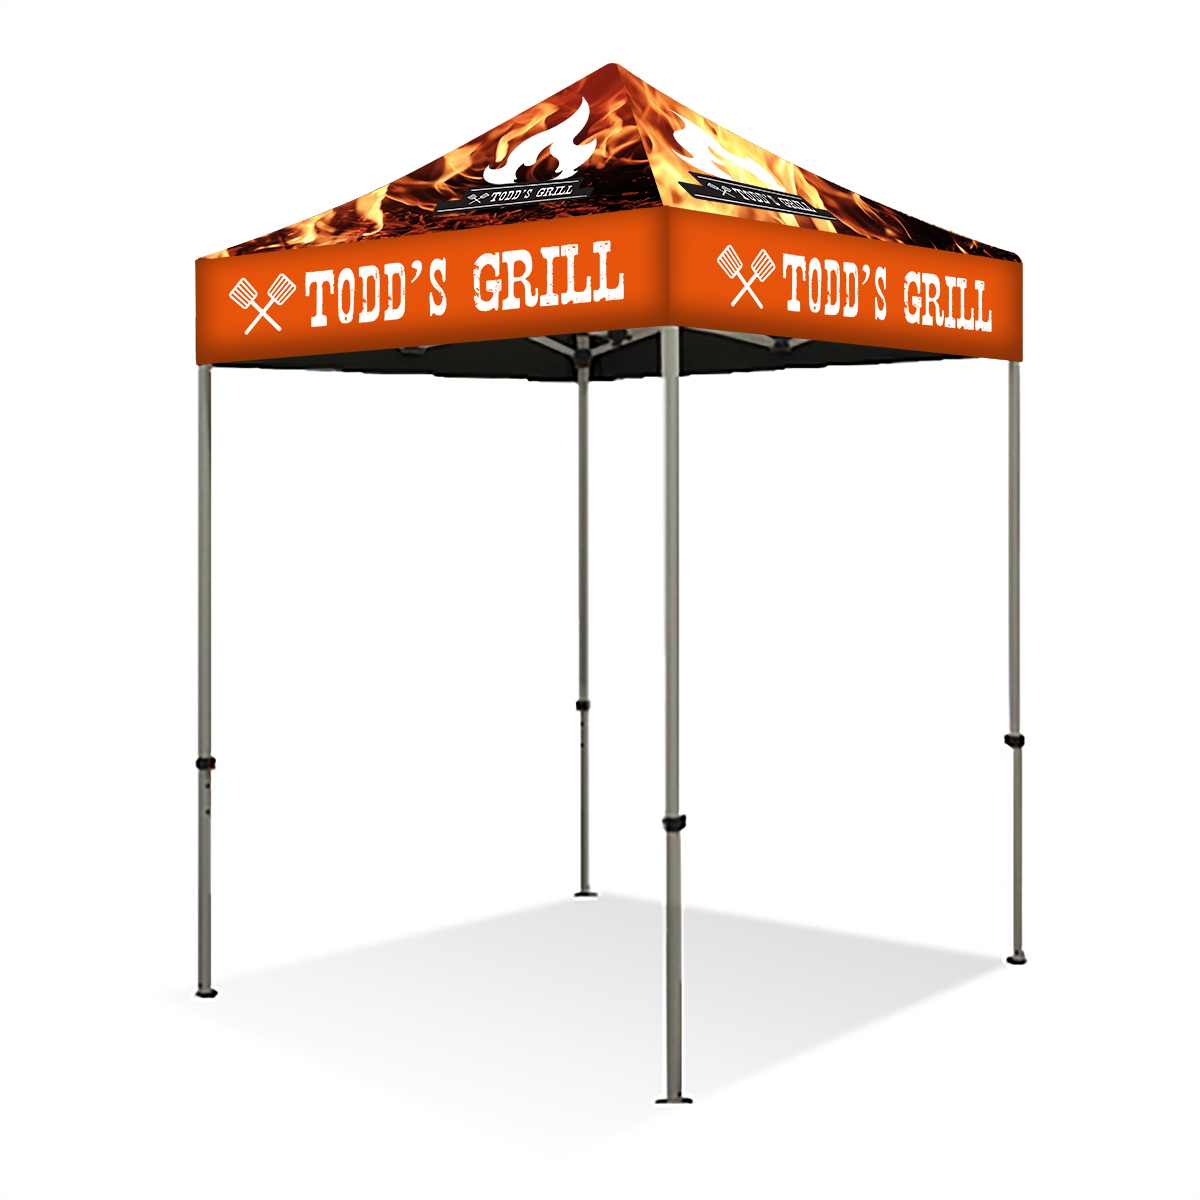 6ft Pop Up Canopy (Steel) - Full Color